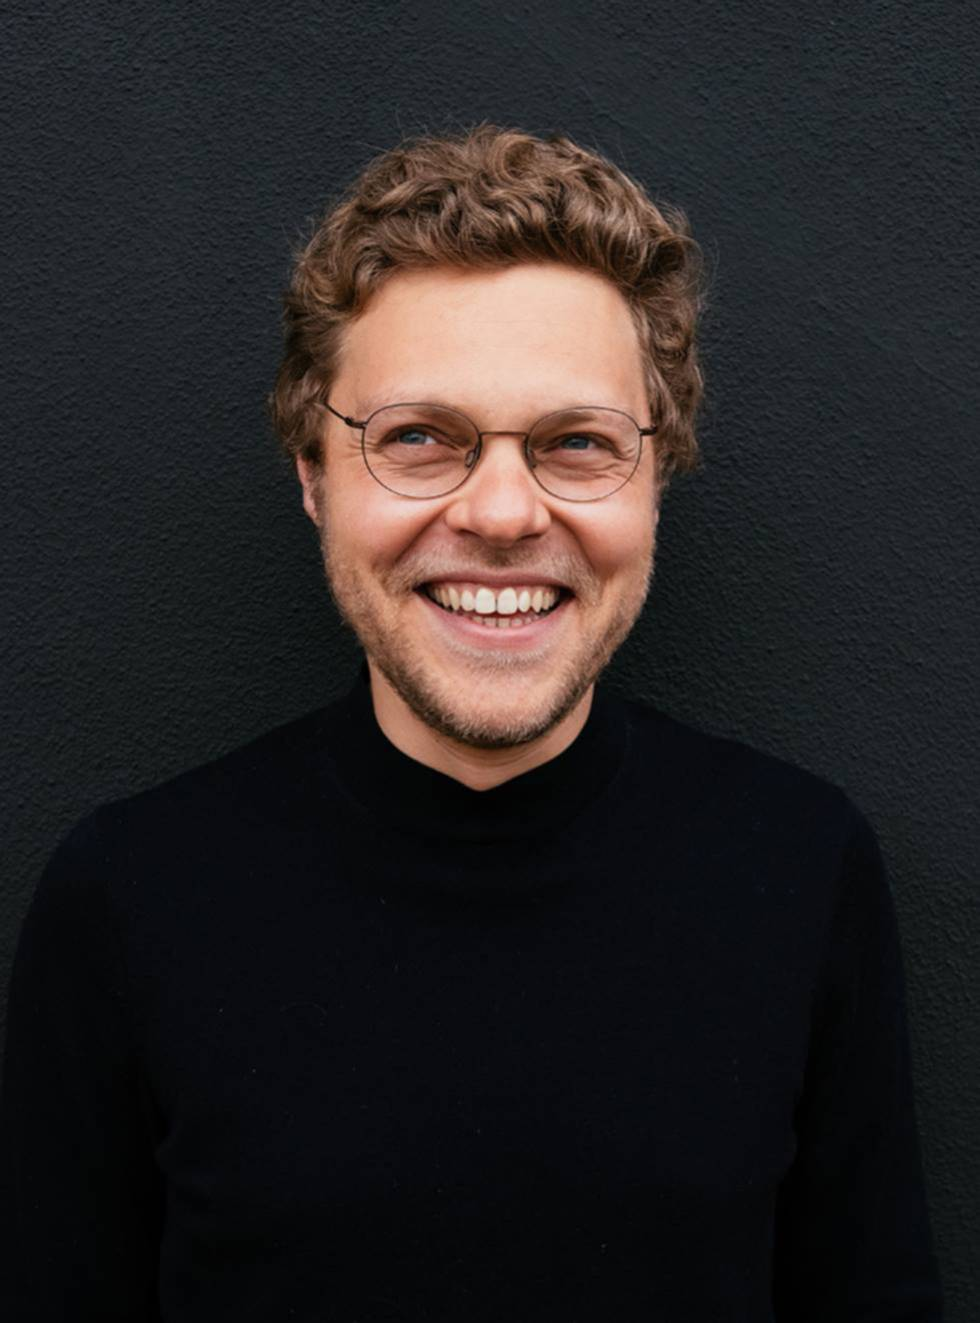 Oleg Stavitsky - CEO and Co-Founder of Endel, Oleg Stavitsky innovates at the intersection of technology, art, and nature